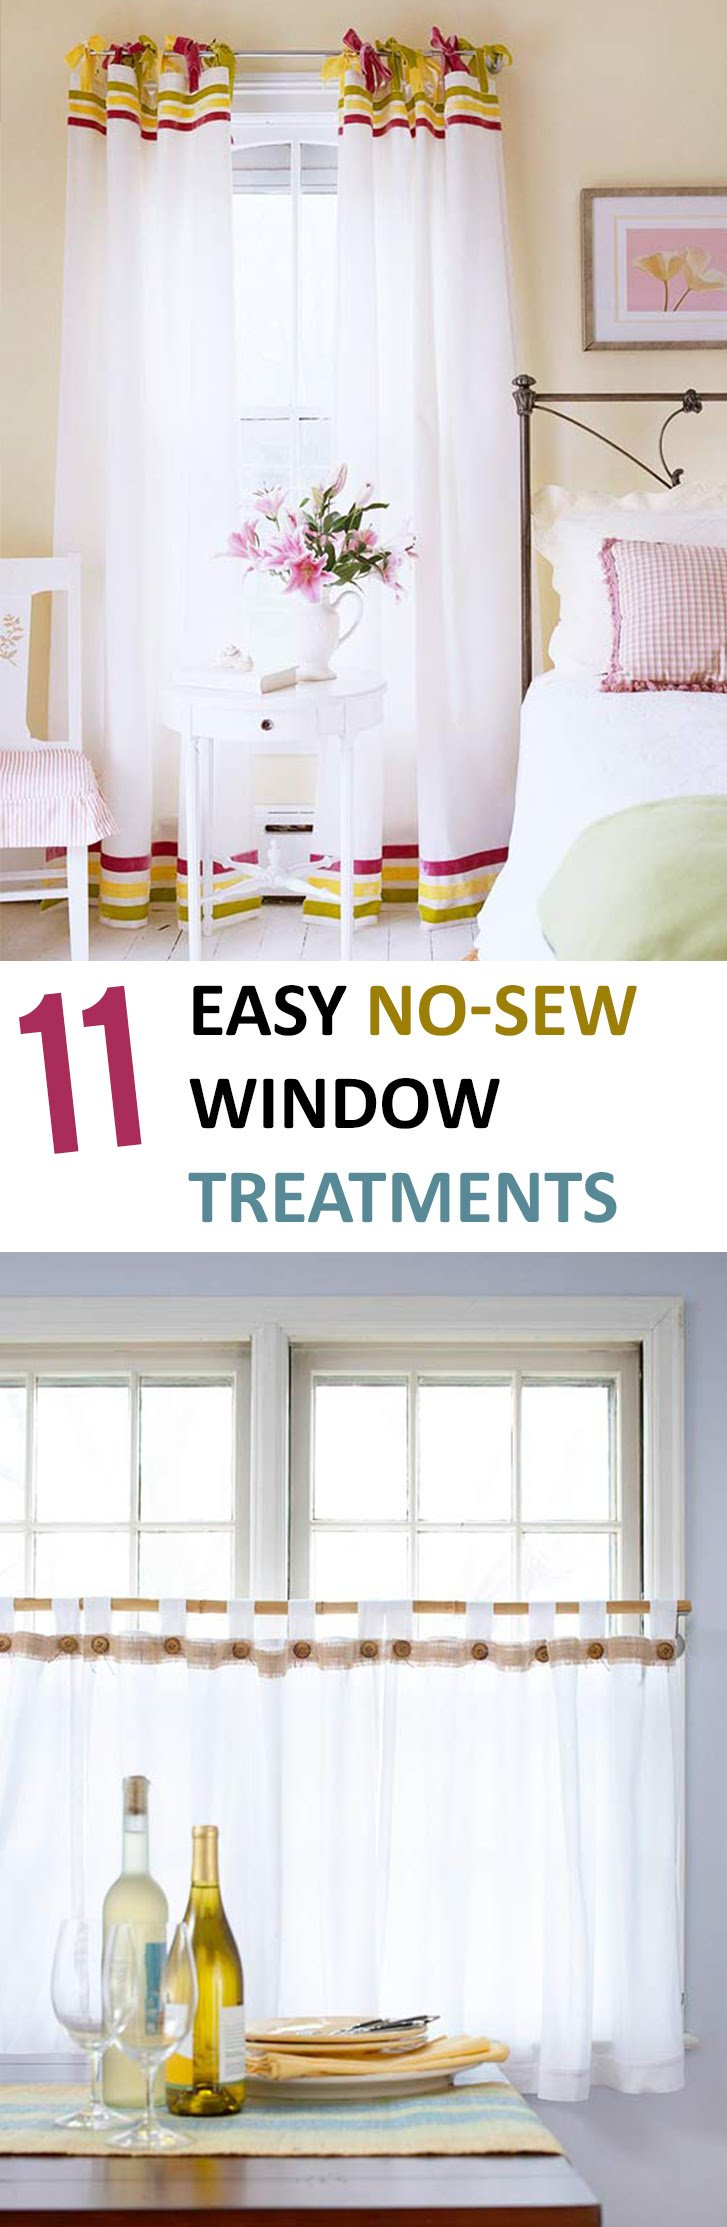 DIY Window Treatments, DIY Window, Window Treatments ...